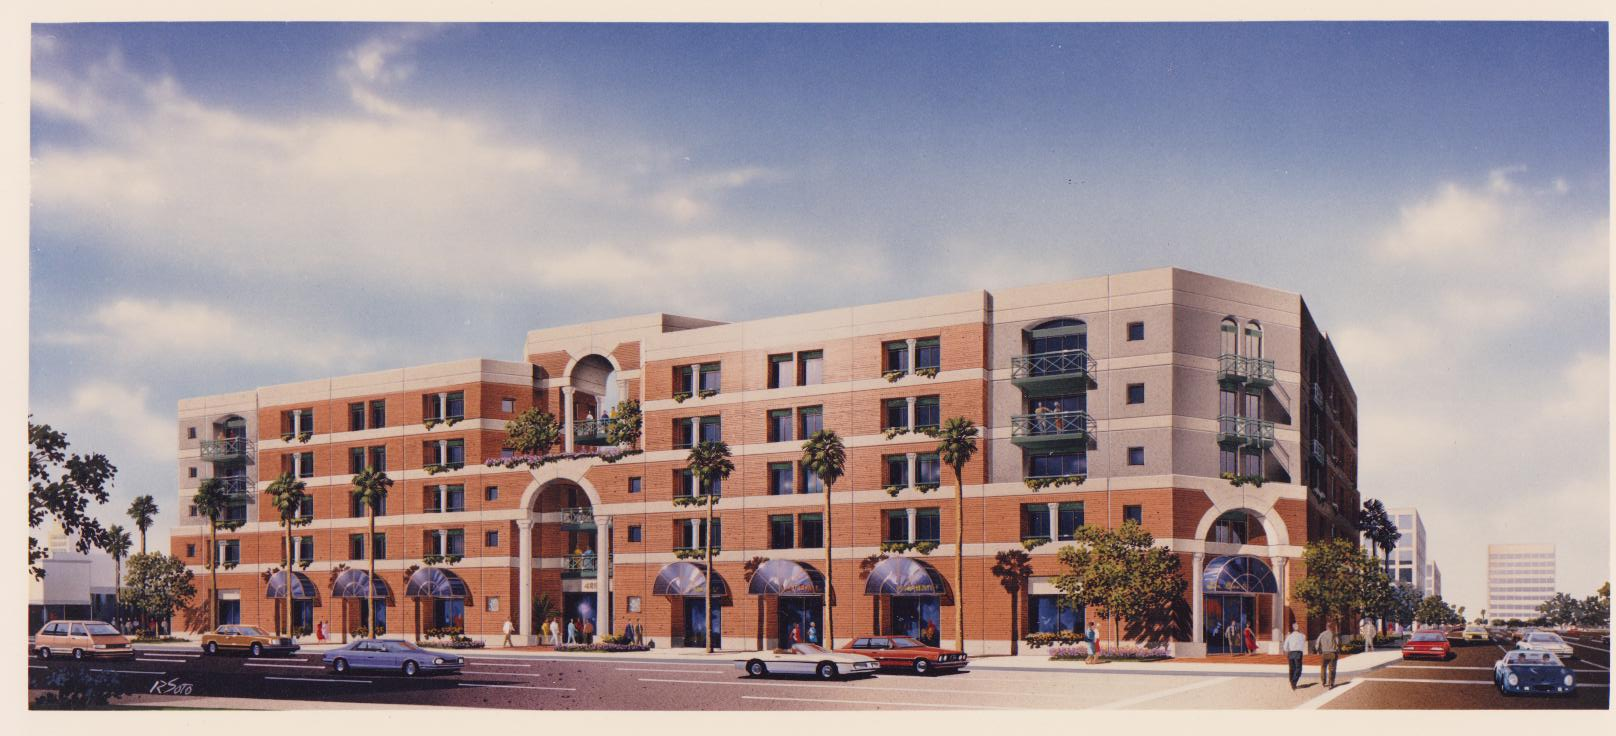 Mixed Use: Apartments over Ground Floor Retail